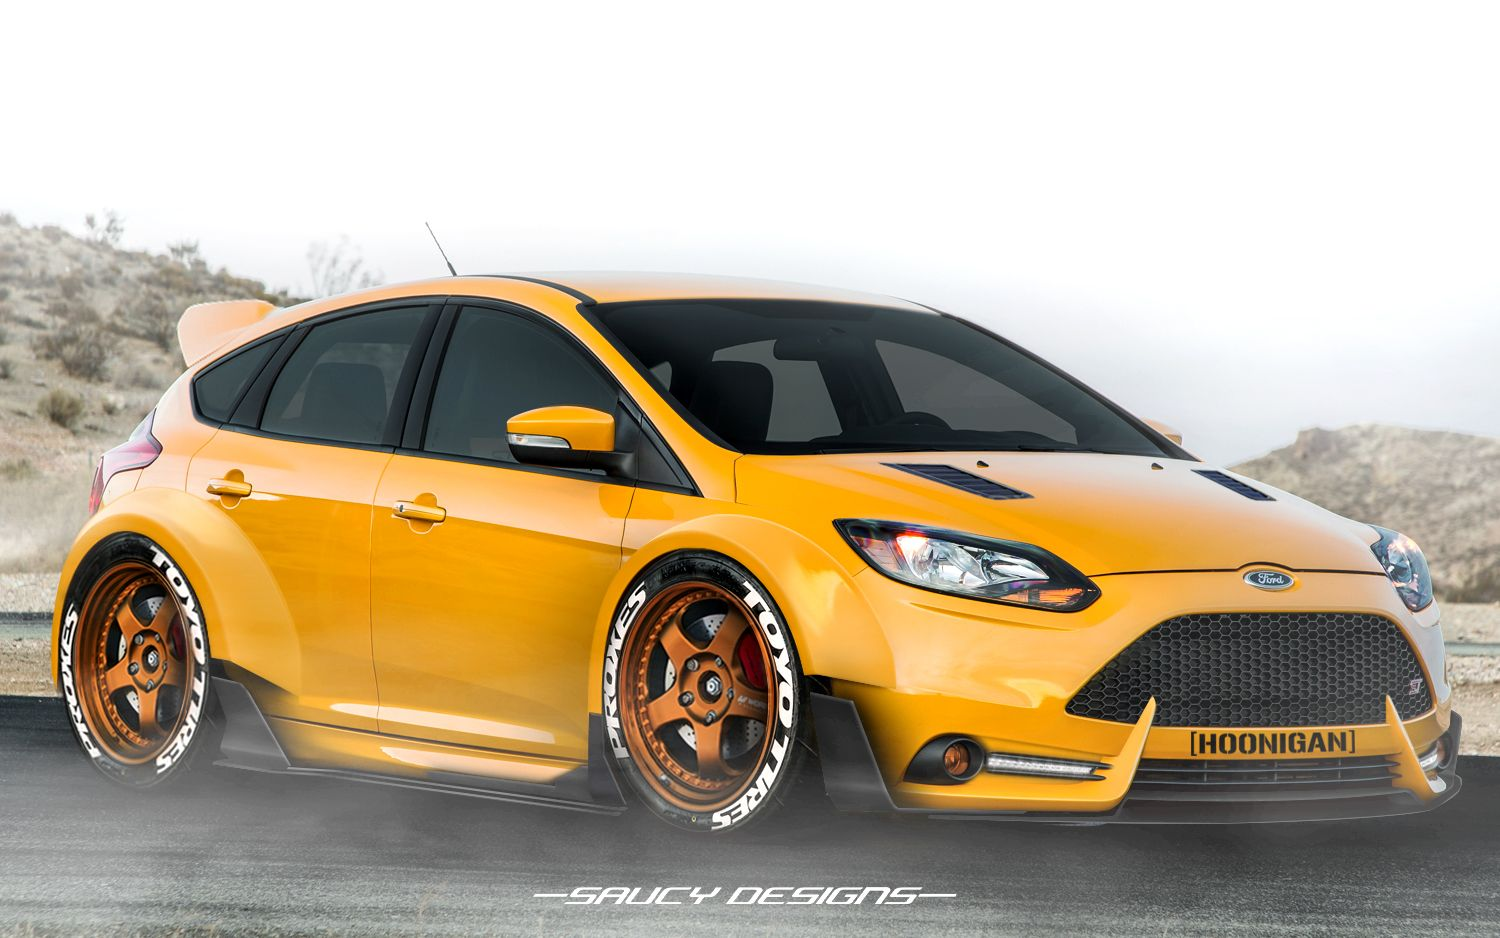 Ford Focus St Widebody Modded Photoshop Render Ford Focus St